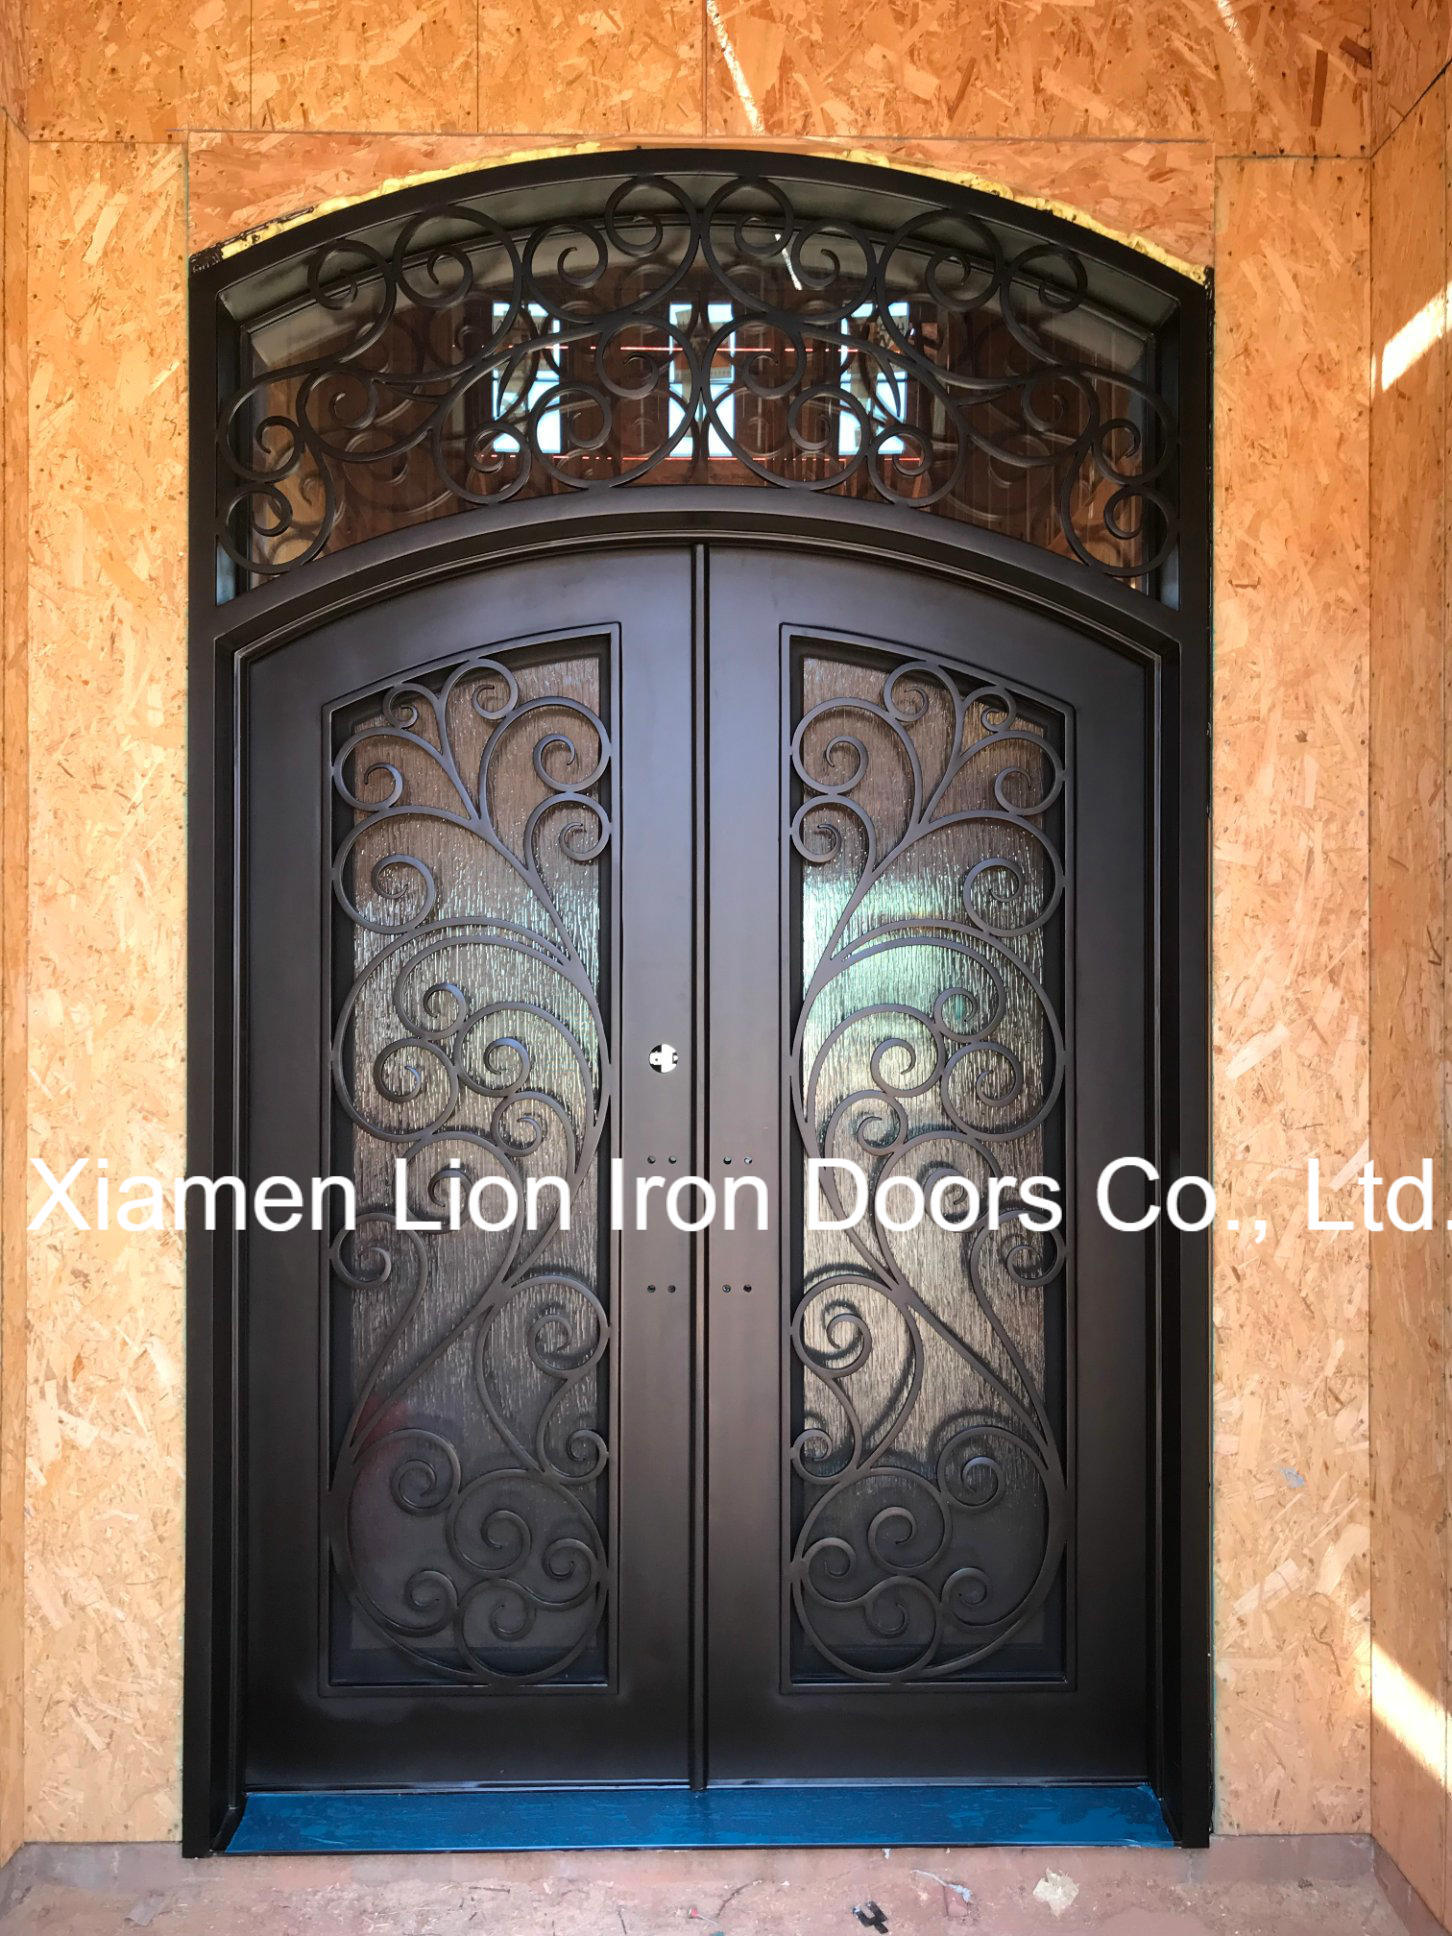 Entrance doors for a private house insulated